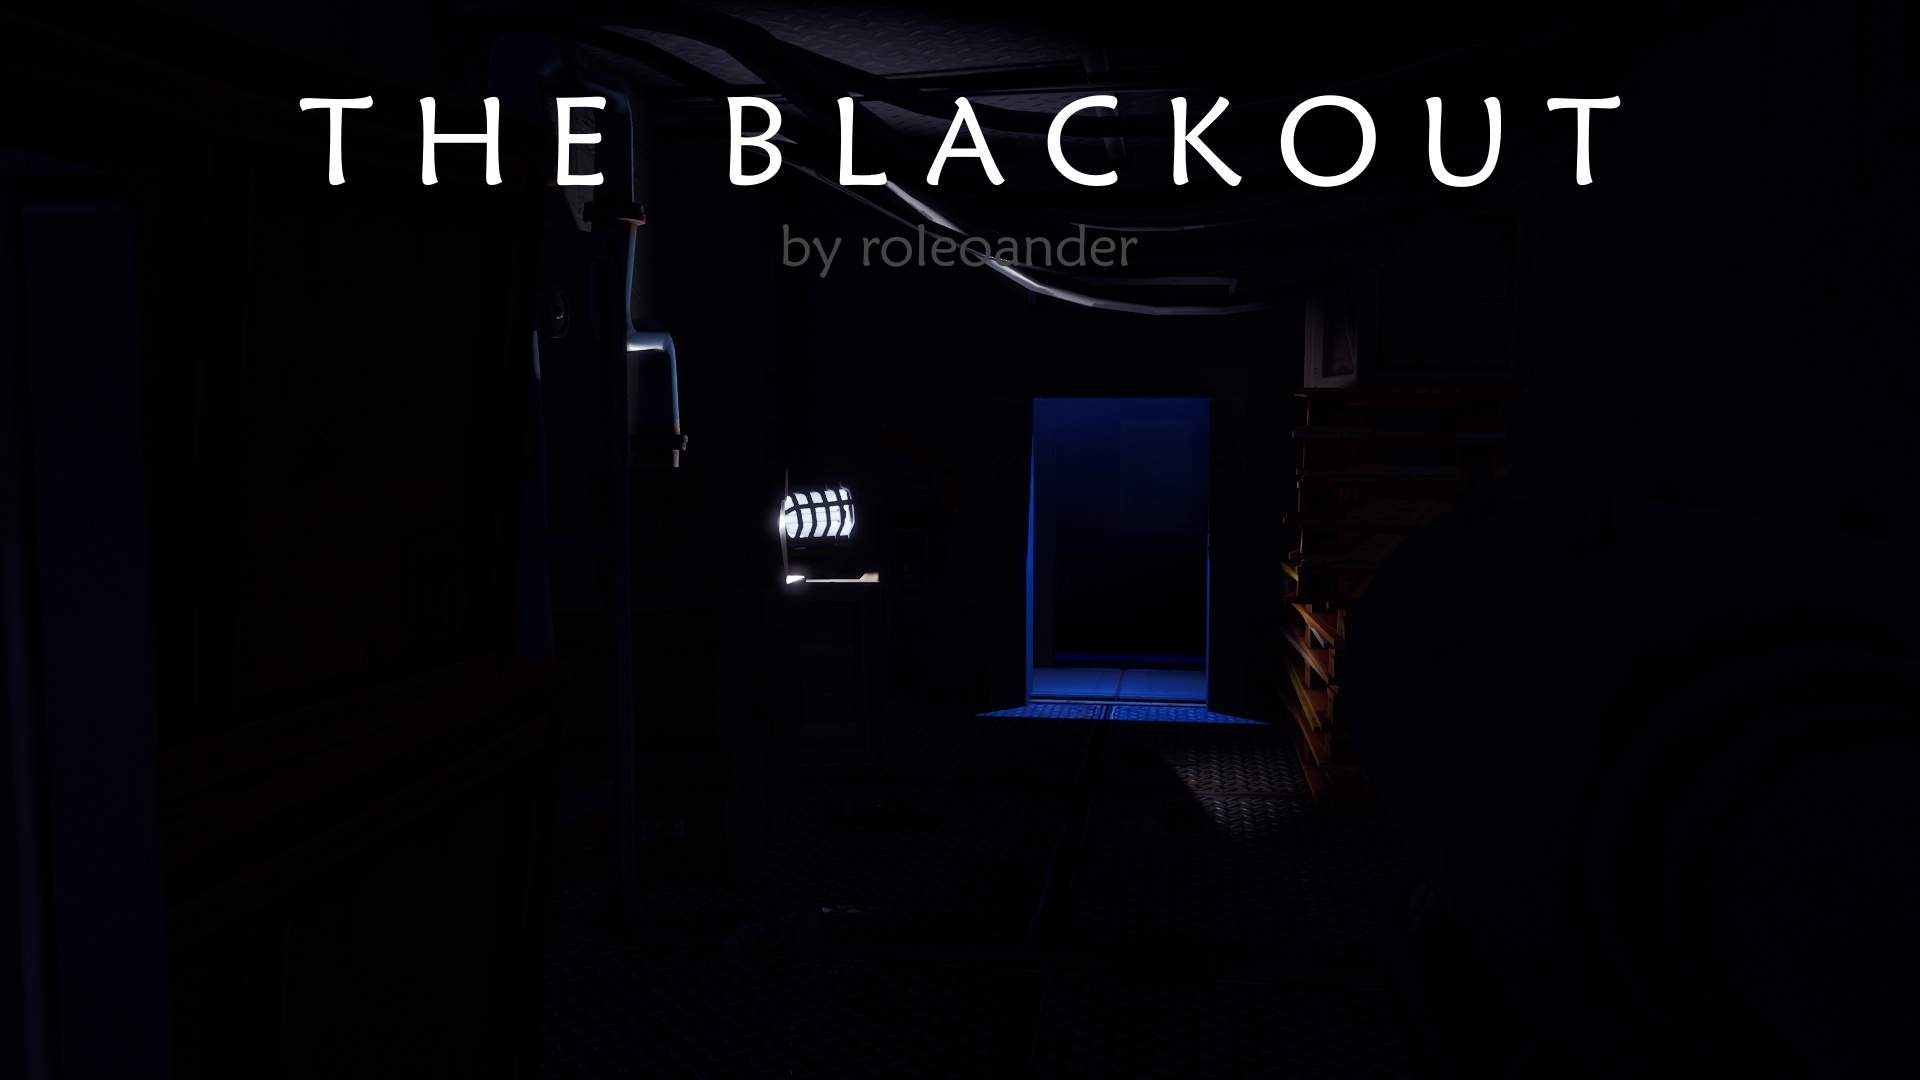 THE BLACKOUT: HORROR